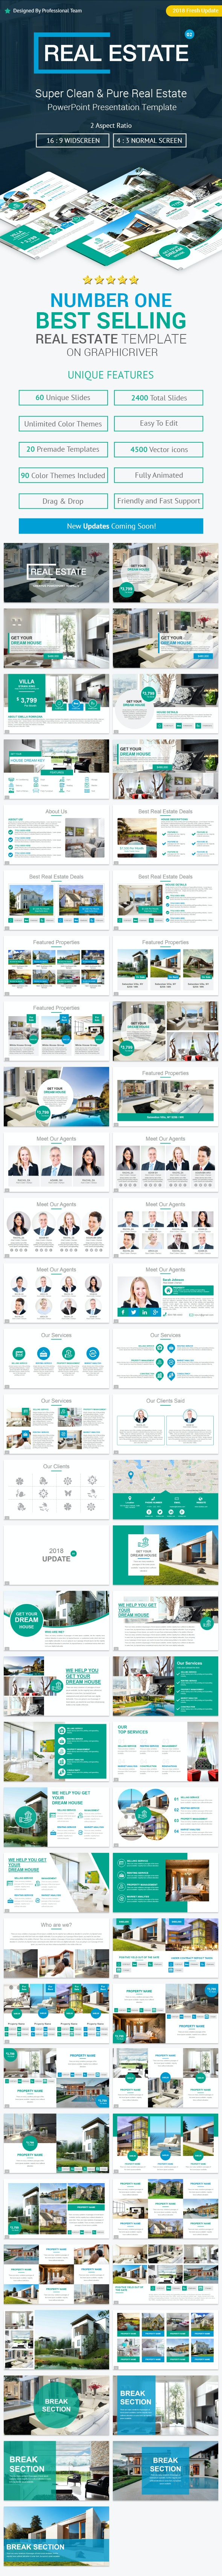 Real Estate PowerPoint Presentation Template - Business PowerPoint Templates